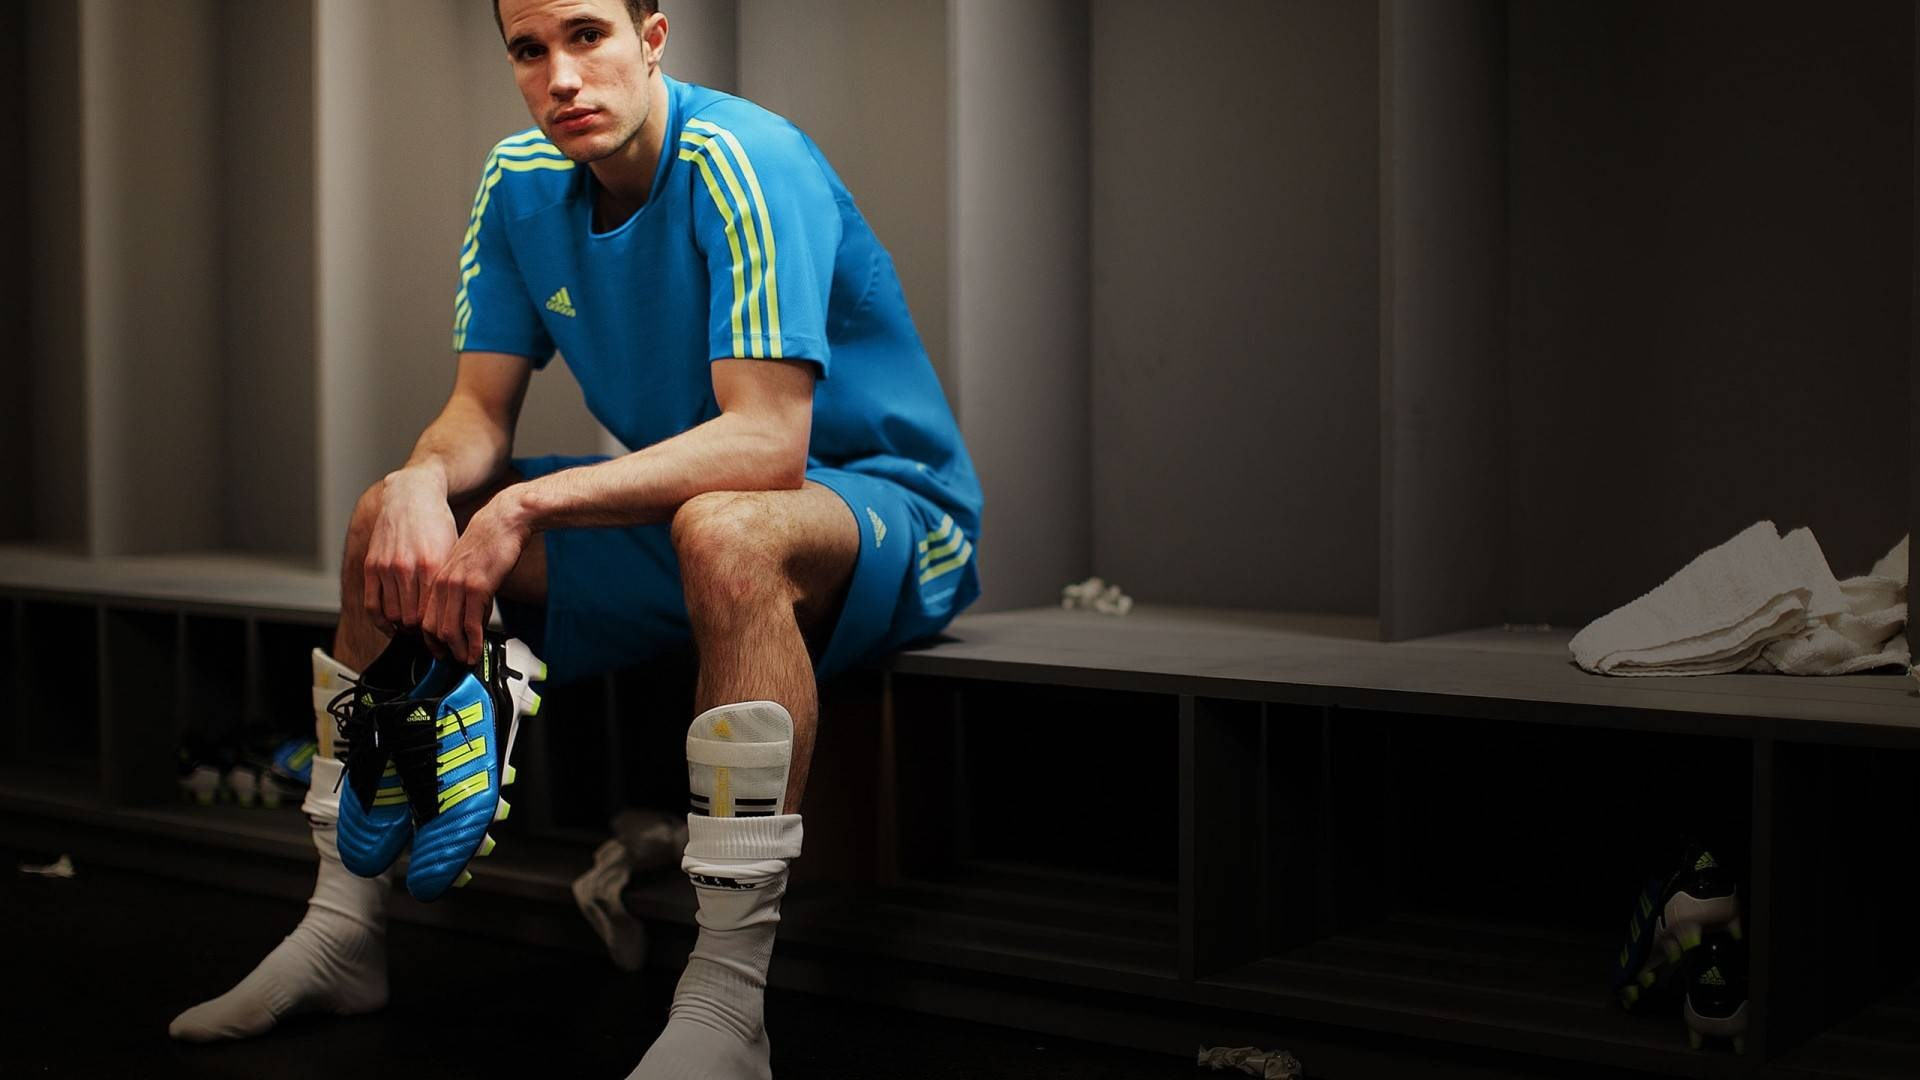 soccer-adidas-1920x1080-wallpaper-wpc9009284